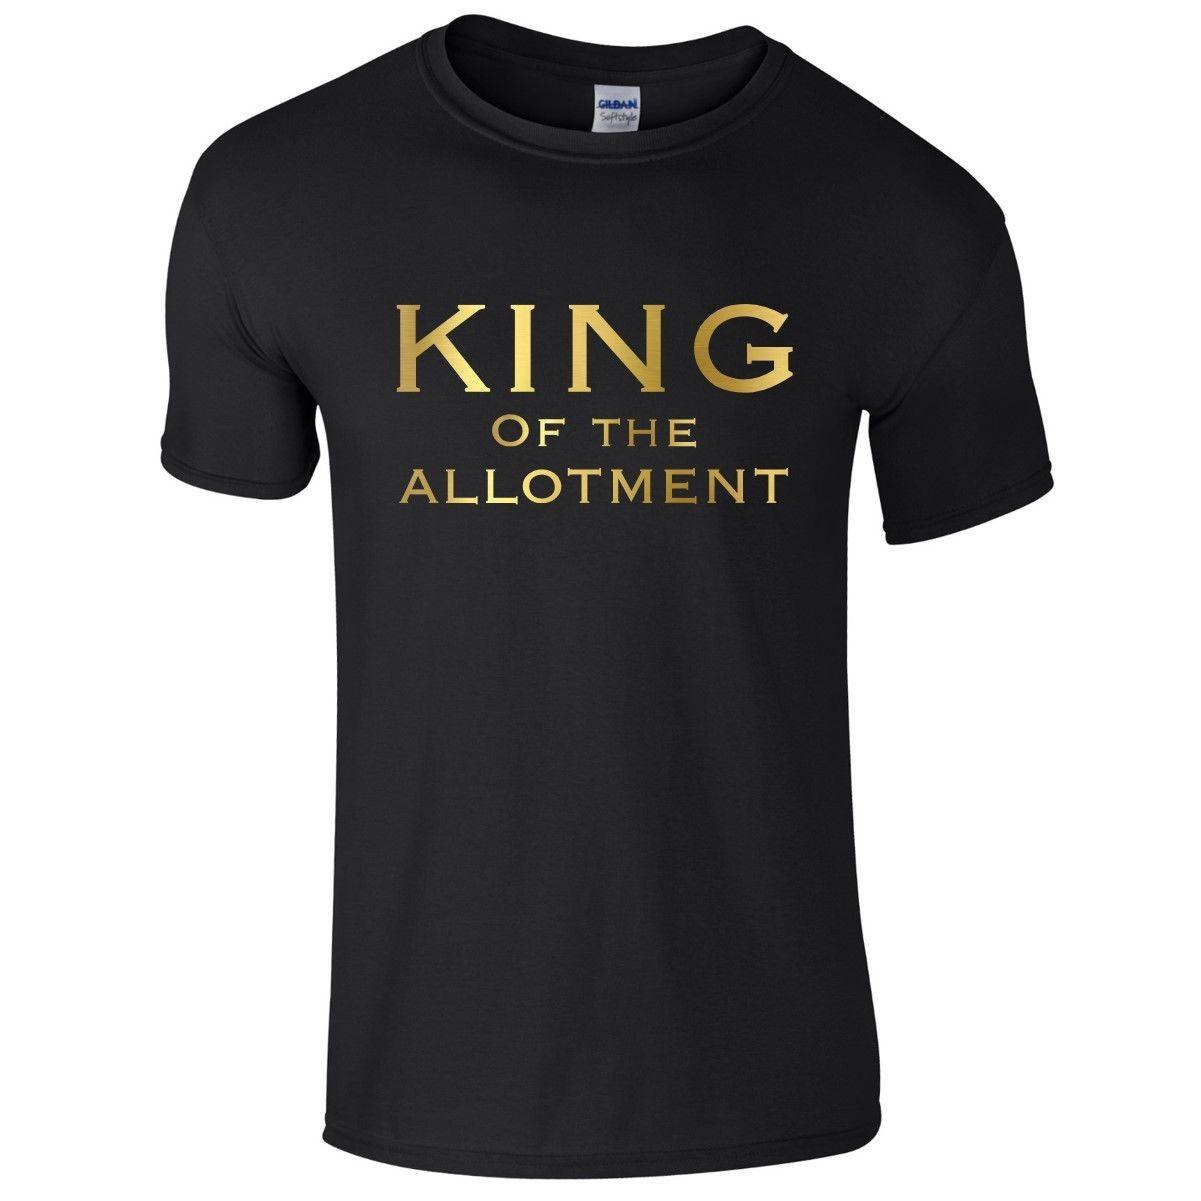 dcac14184eec KING OF THE ALLOTMENT Mens T-Shirt S-3XL Funny Printed Novelty Joke ...